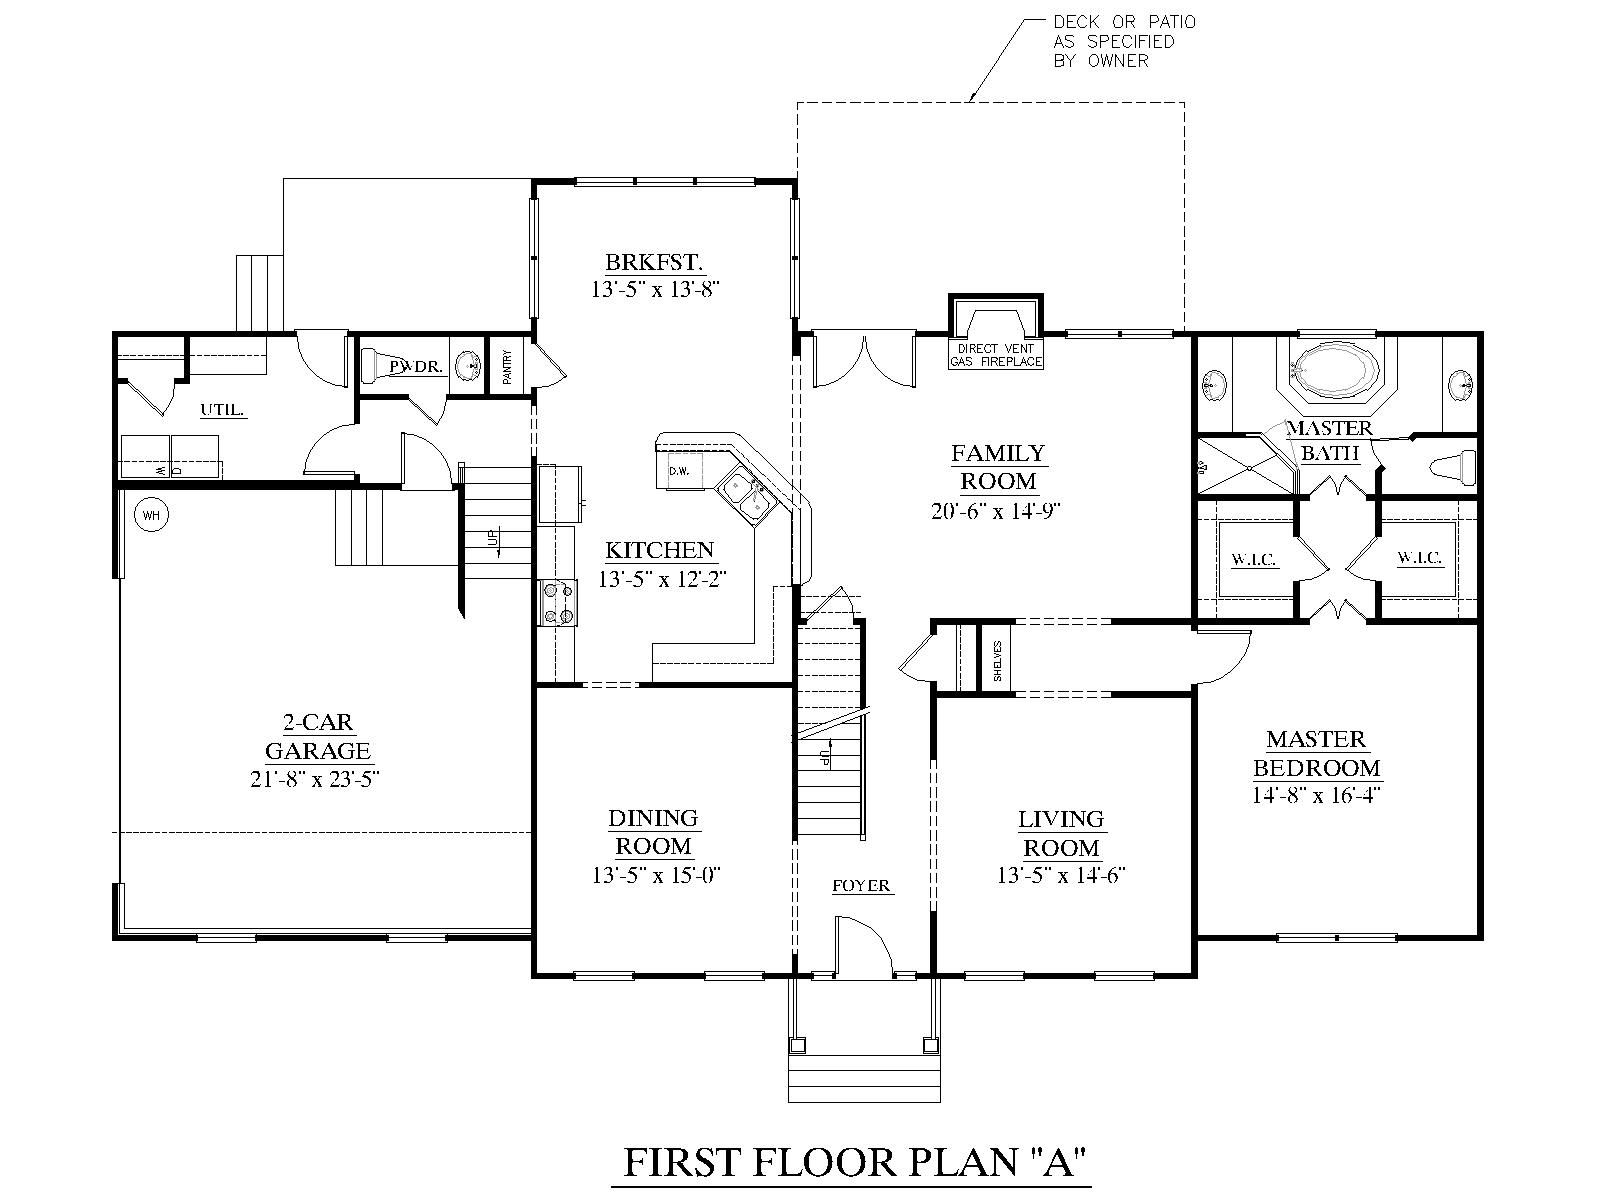 House Plan 3120 C Pendleton First Floor Traditional Brick Colonial Design With Large Family Room An House Plans Southern Living House Plans House Floor Plans